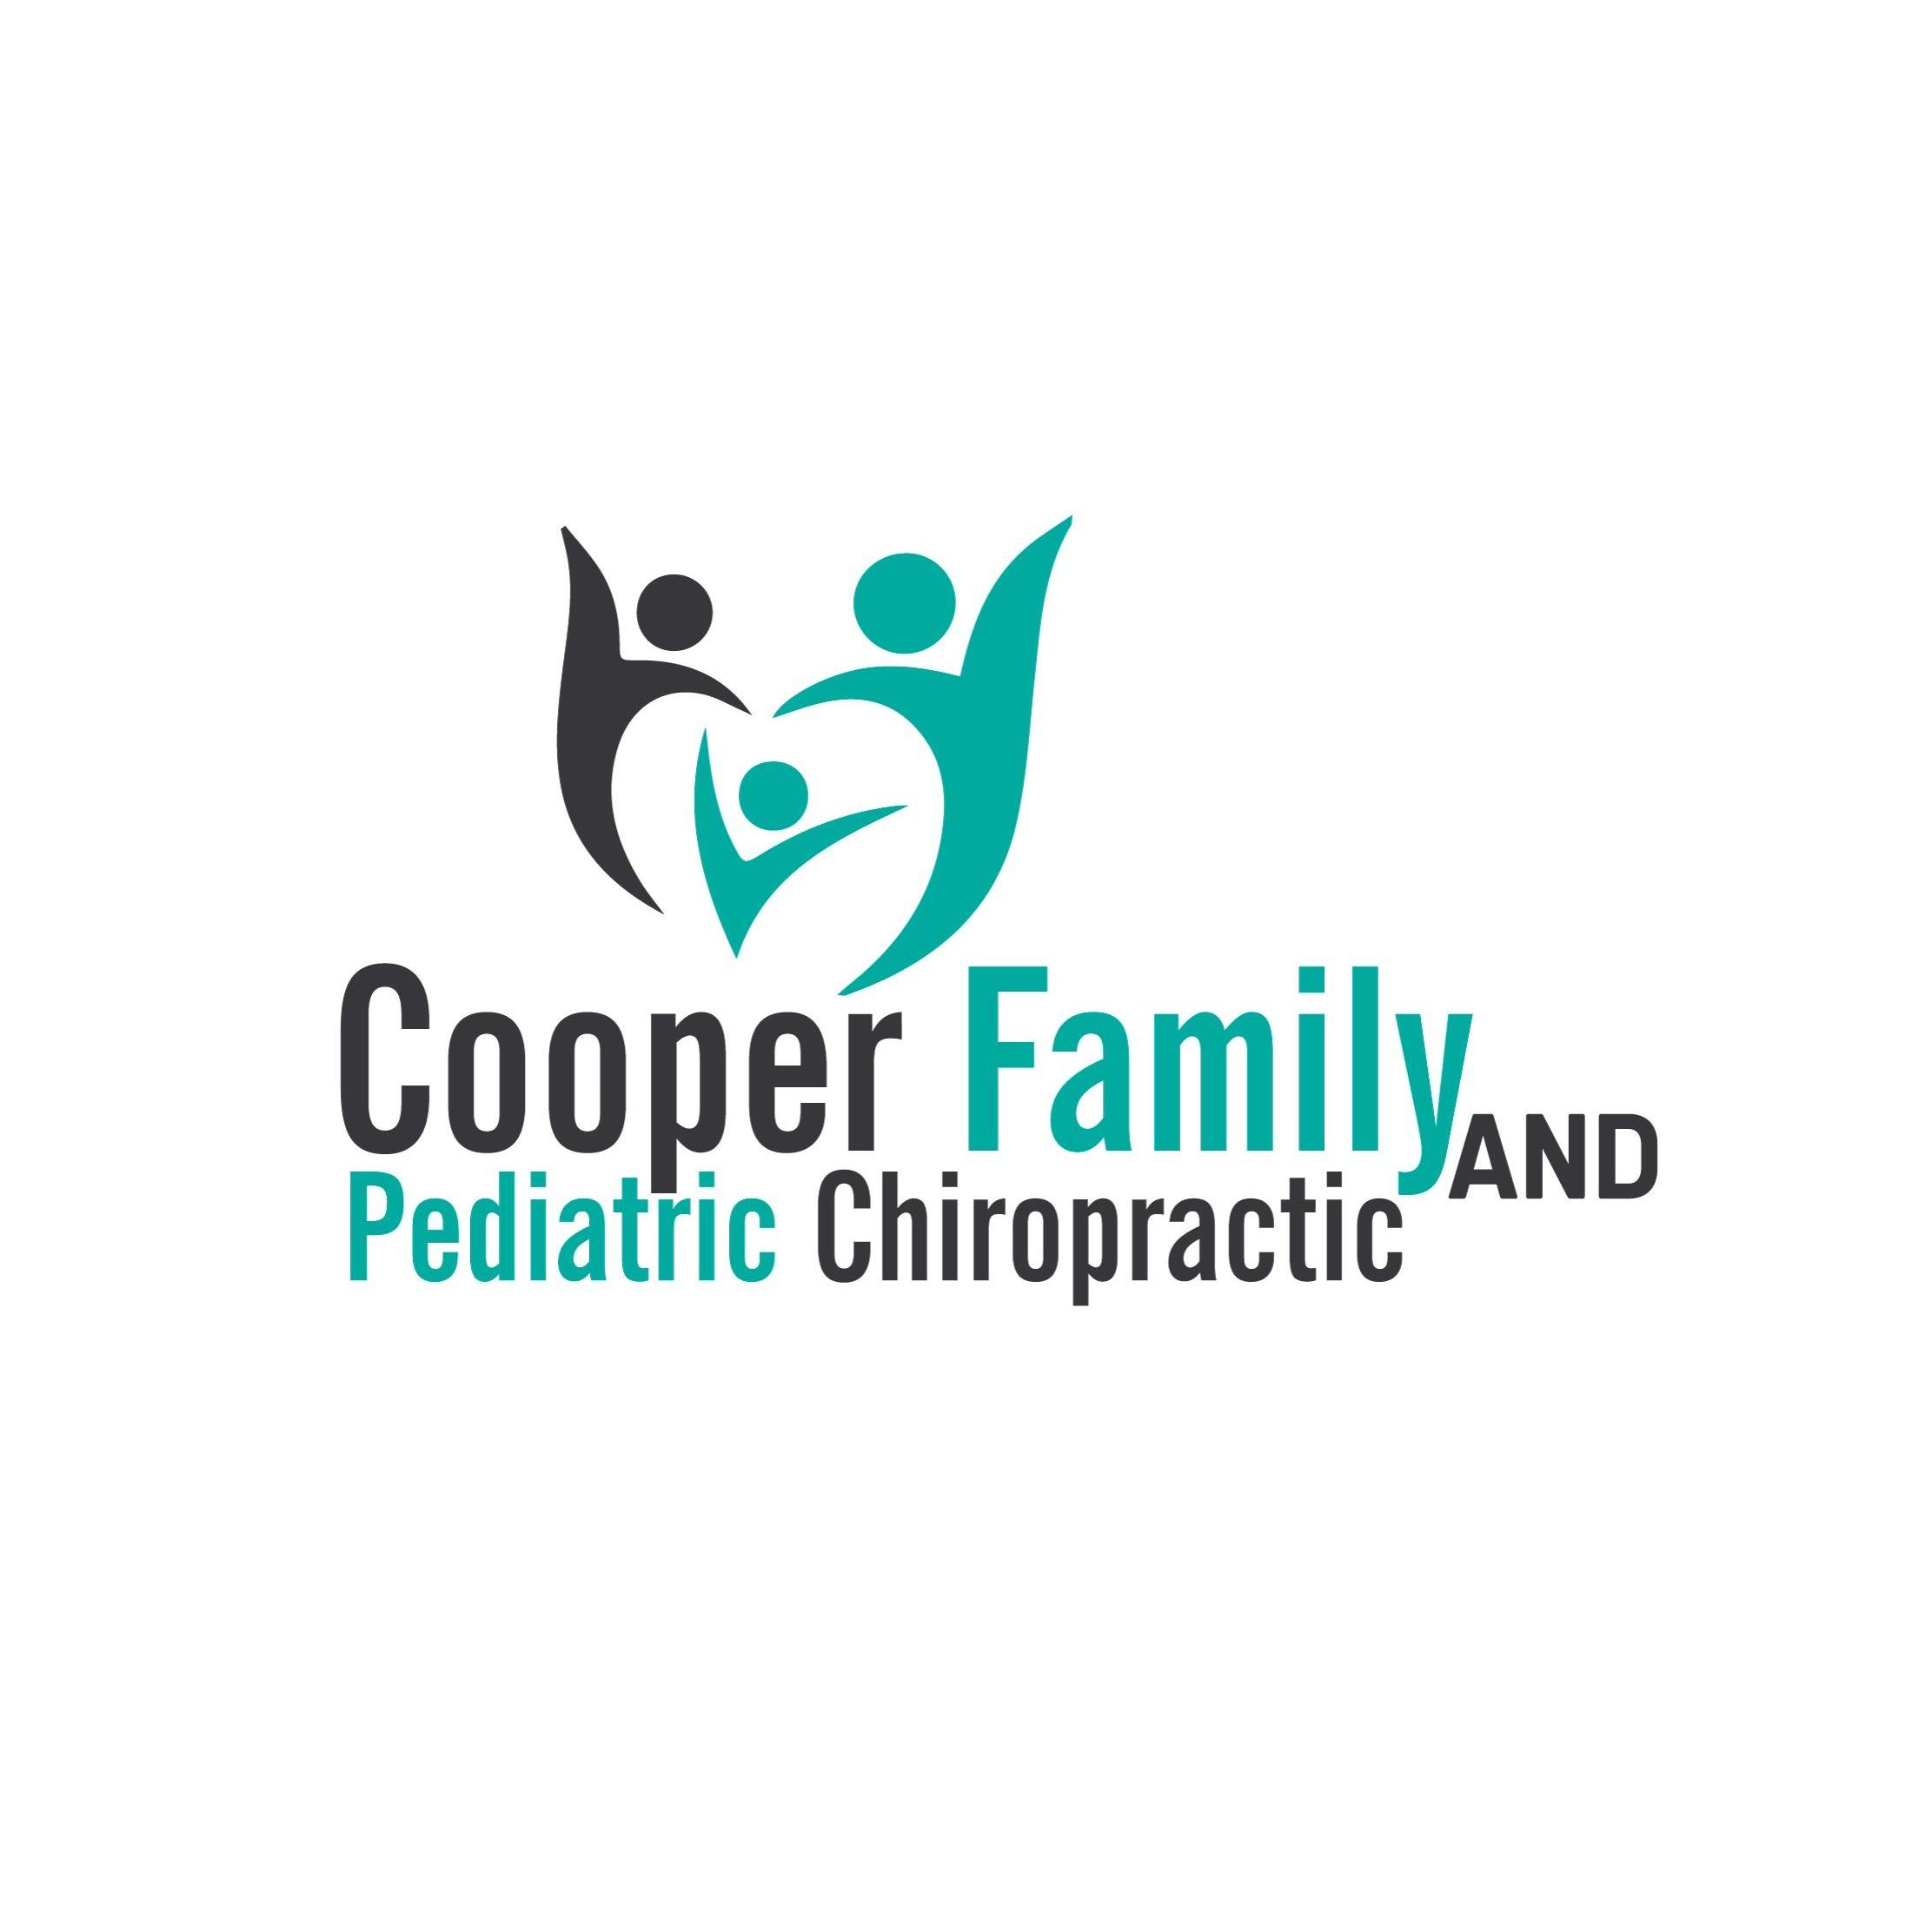 image of the Cooper Family and Pediatric Chiropractic-Dr. Nancy Elwartowski-Cooper